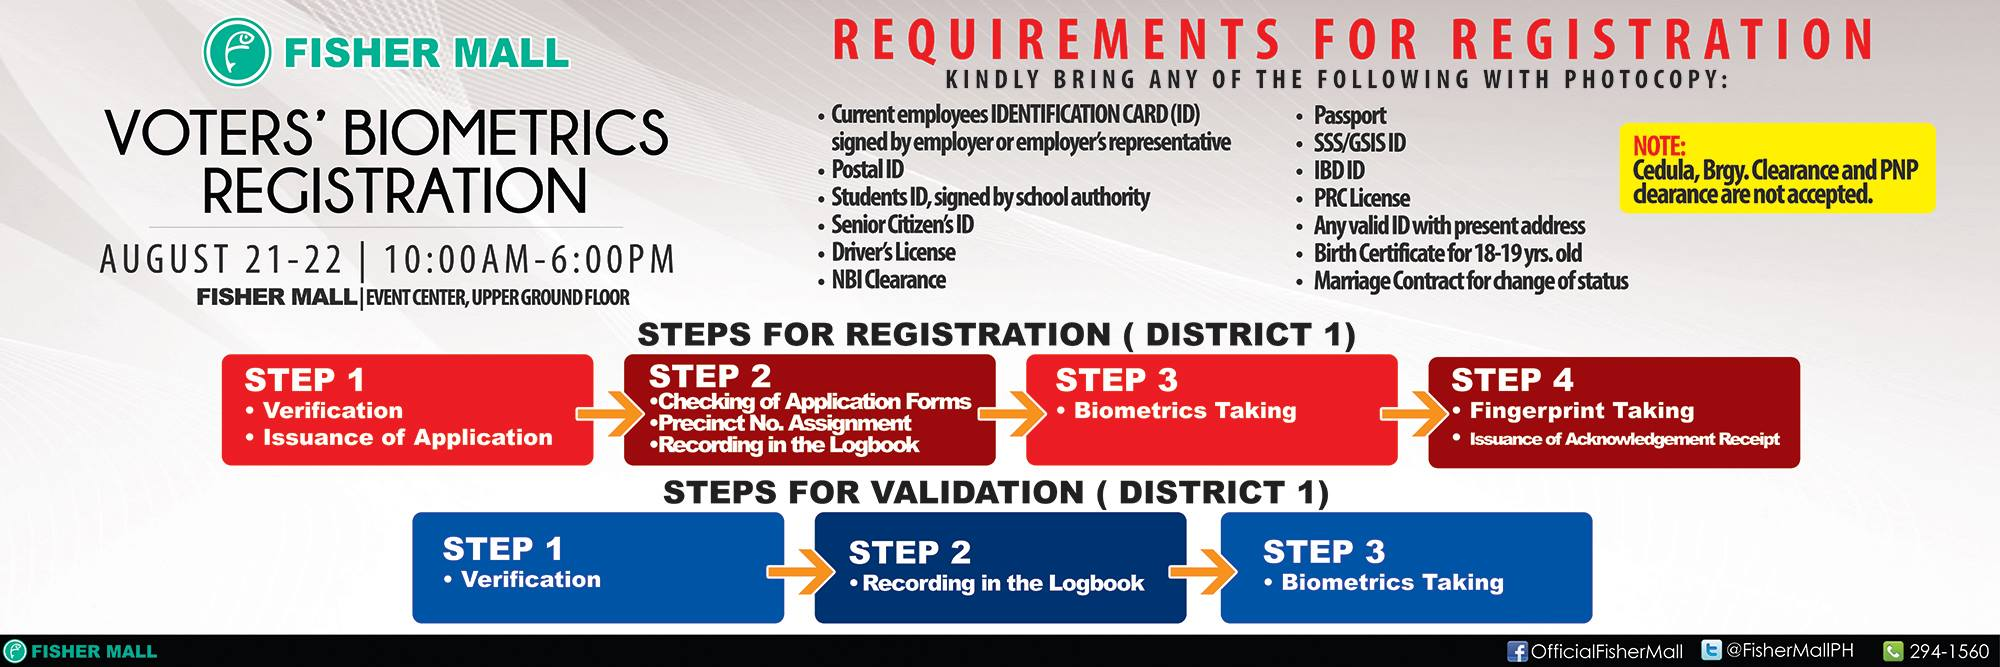 FOR QC DISTRICT 1 & 4 RESIDENTS – Voter's Biometrics Registration on August 21-22 at Fisher Mall